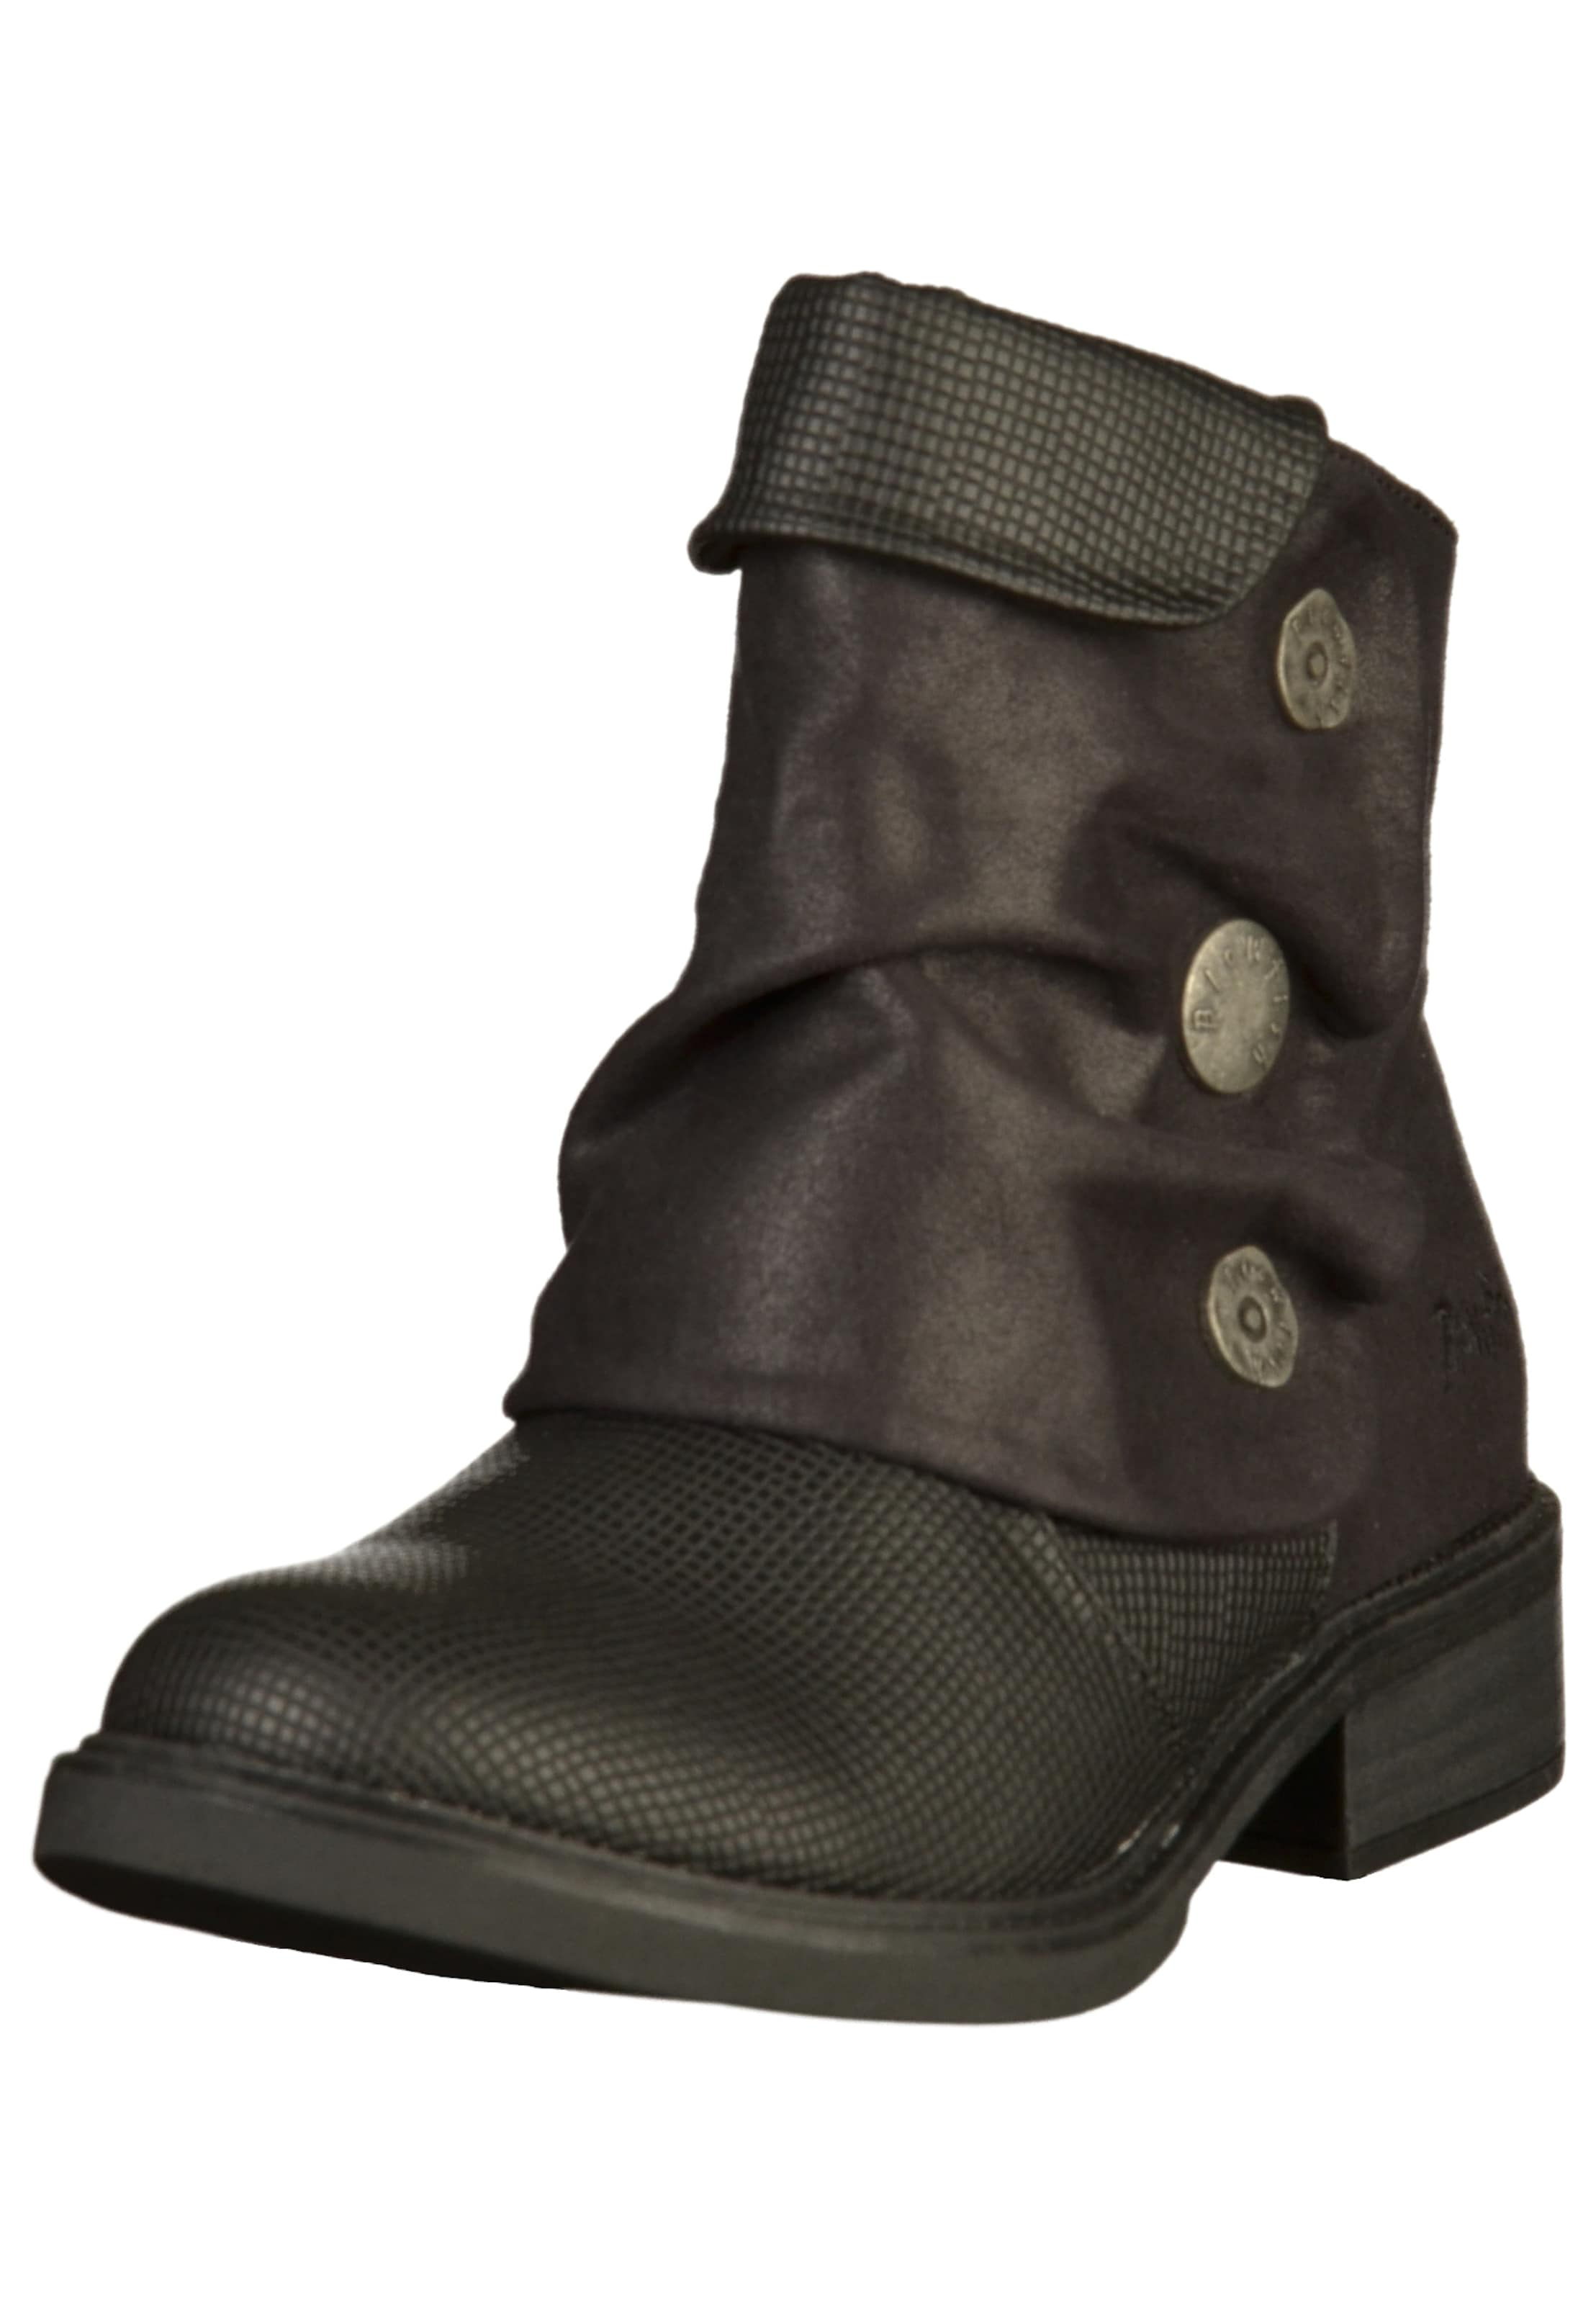 Schwarz Stiefelette Stiefelette Blowfish Stiefelette In Schwarz Blowfish Blowfish Schwarz In In jS43Ac5RLq